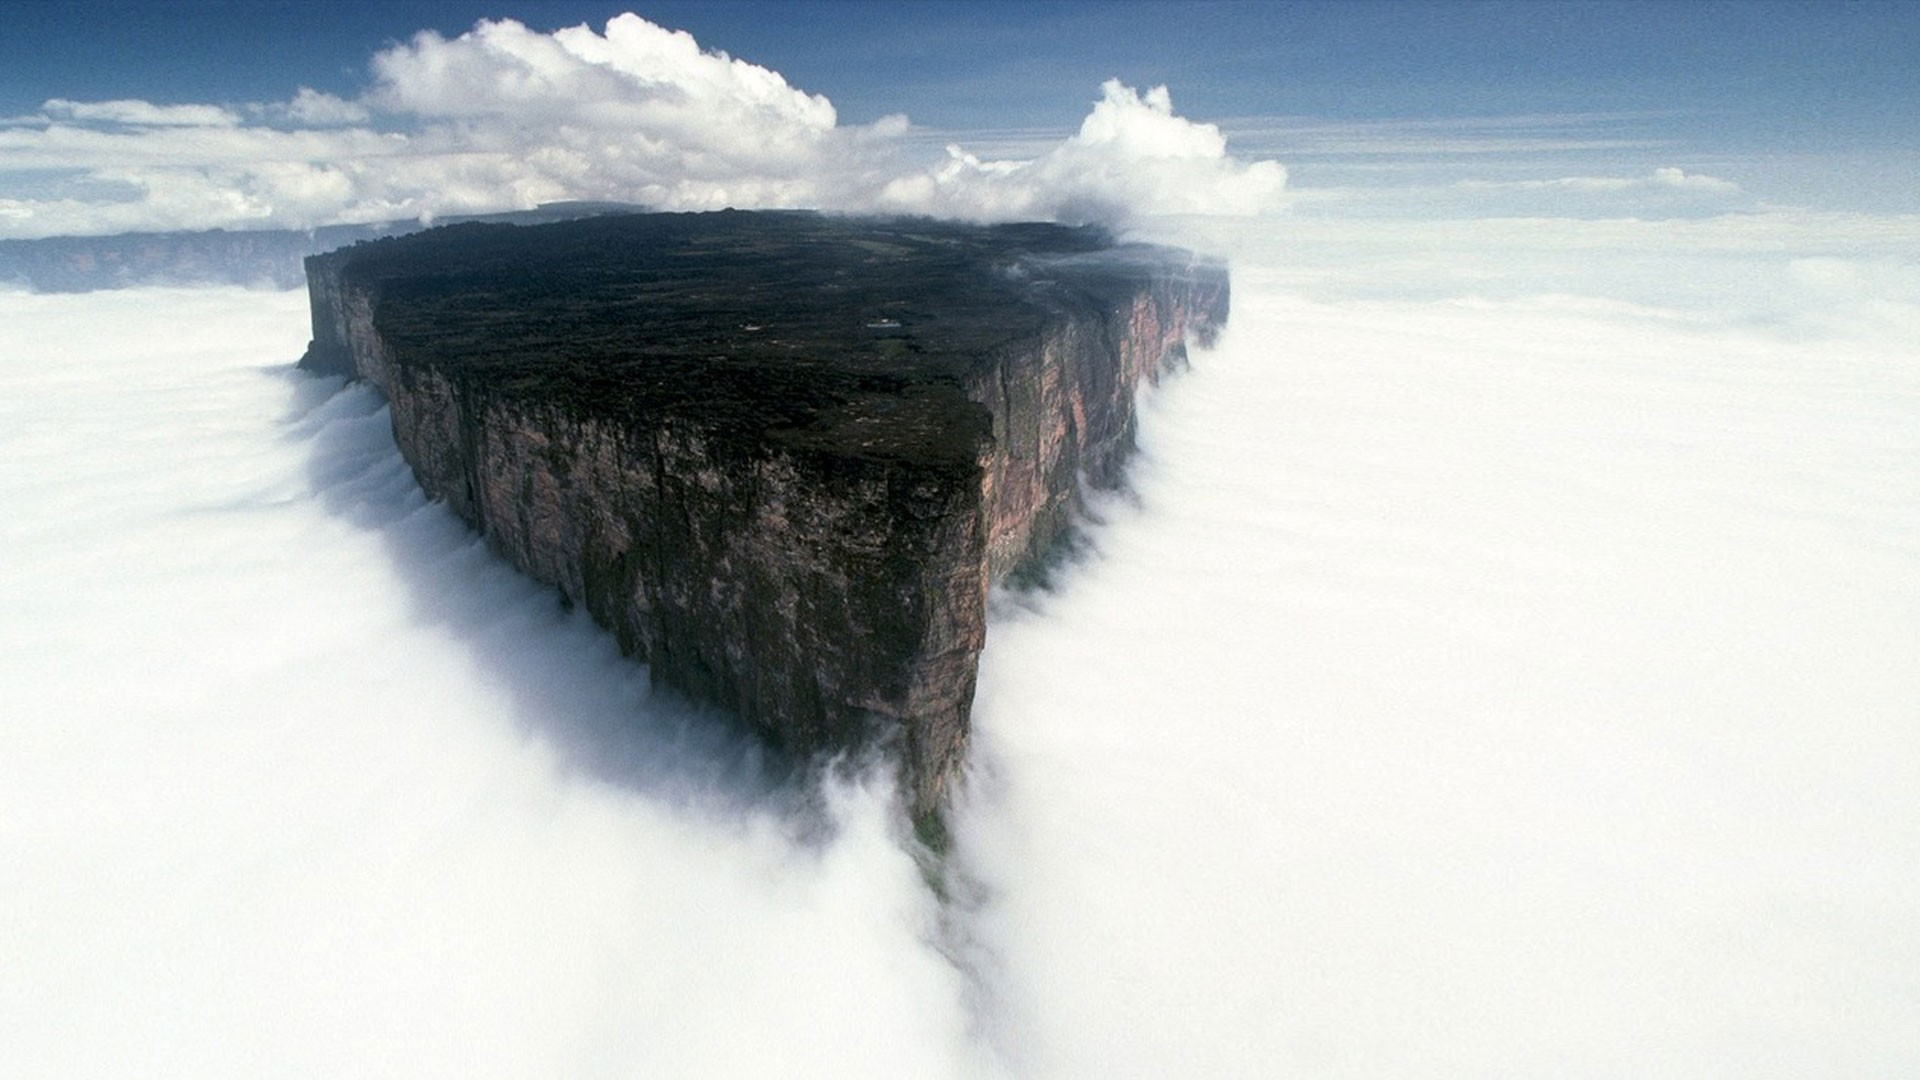 landscape, Mount Roraima, Mist, Venezuela Wallpapers HD / Desktop